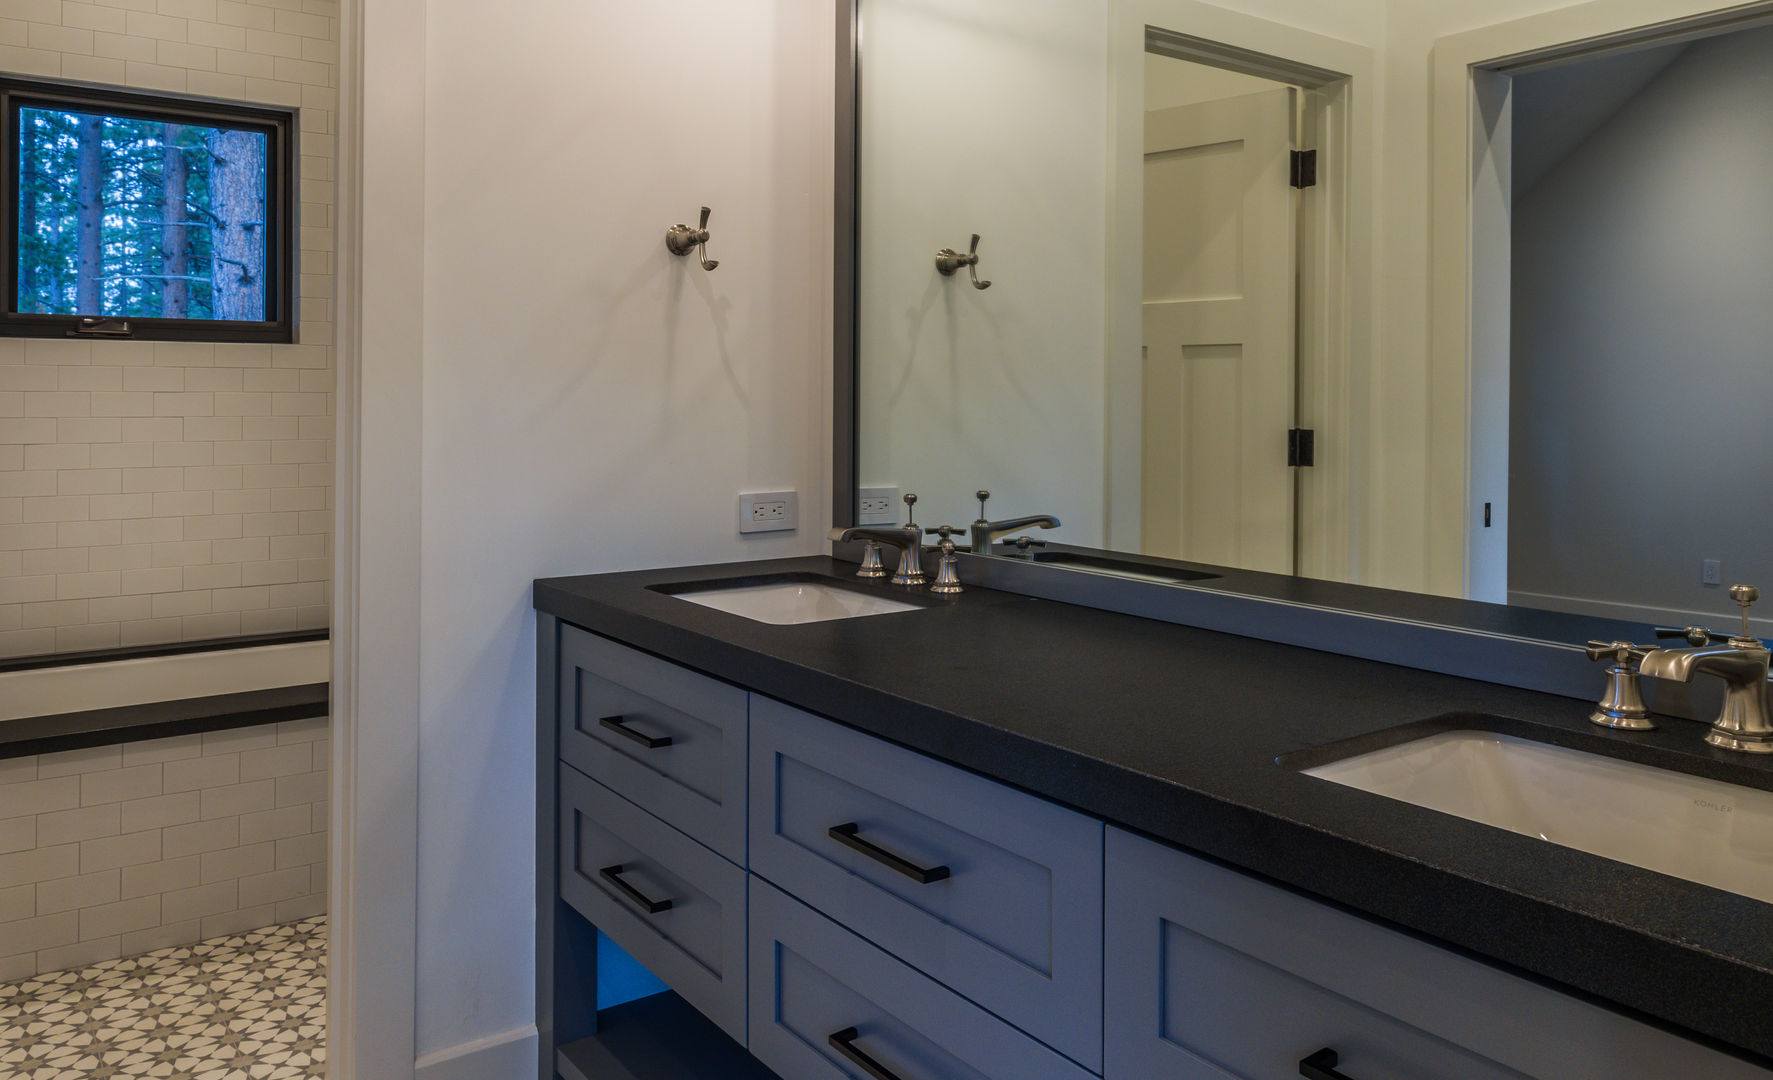 Stylish main bathroom design, tiled flooring and double sink feature